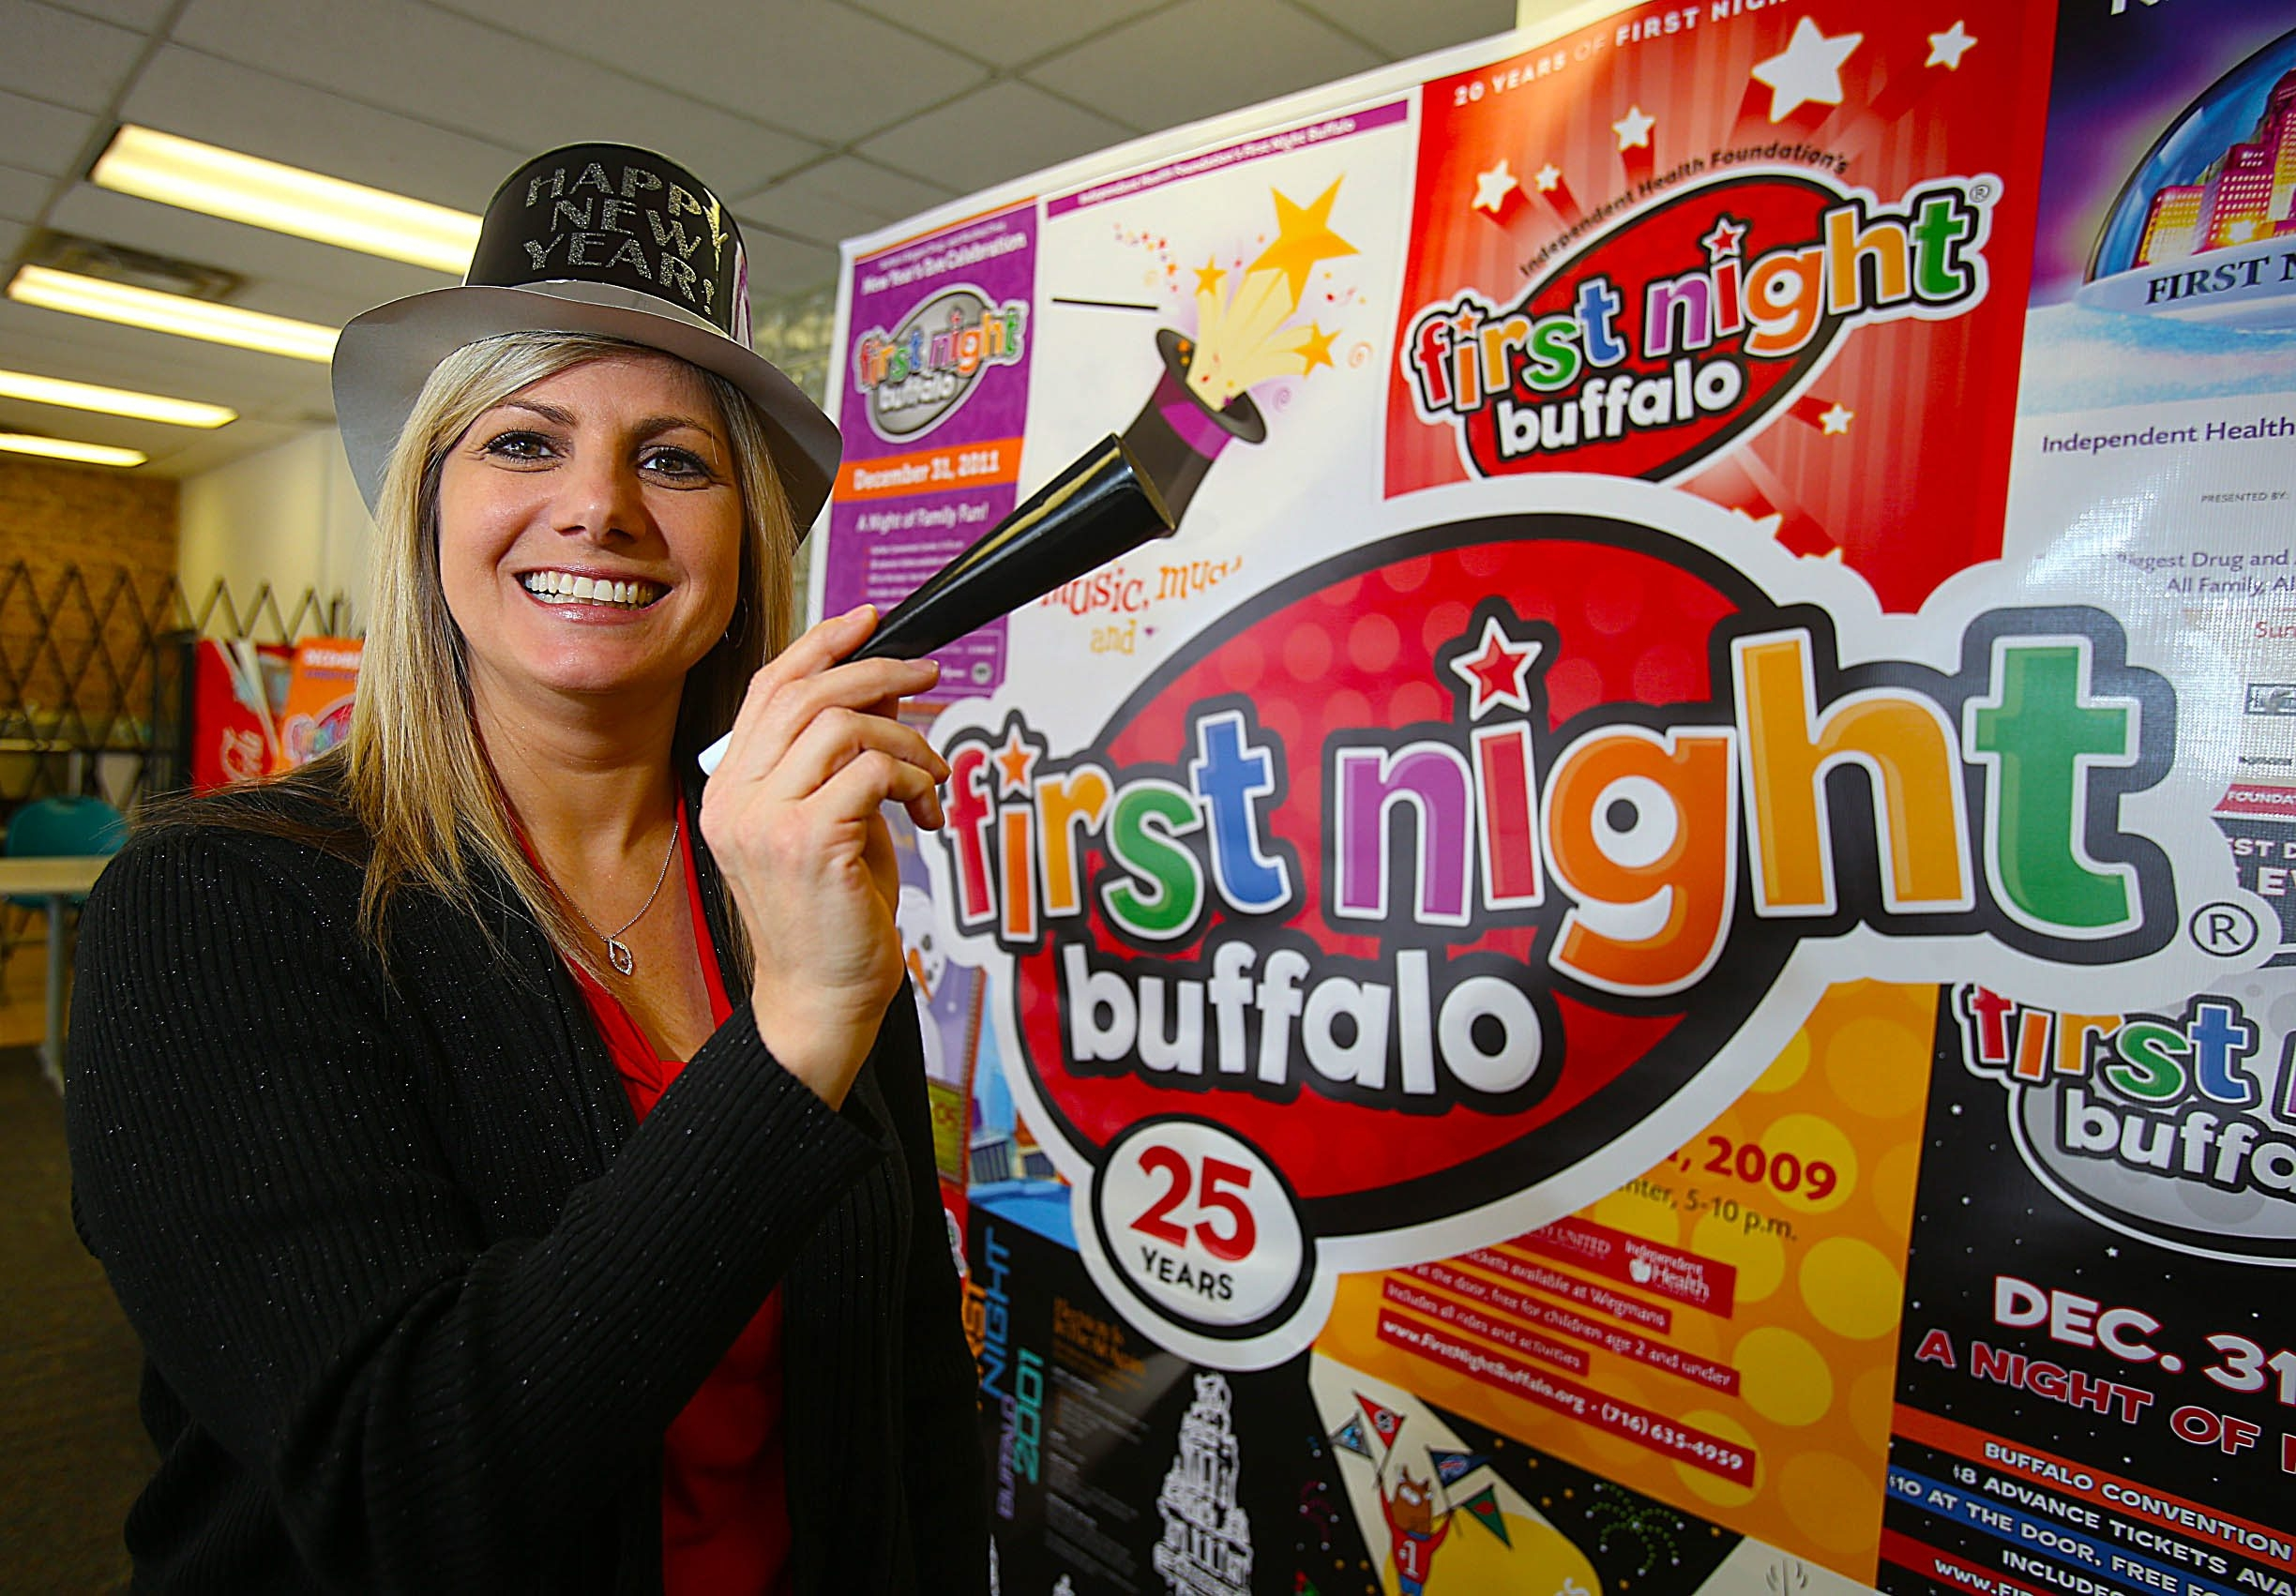 """""""We really want to encourage people before they get there to take a look at all the activities, because there's so much going on you want to plan the night out."""" — Carrie Meyer"""